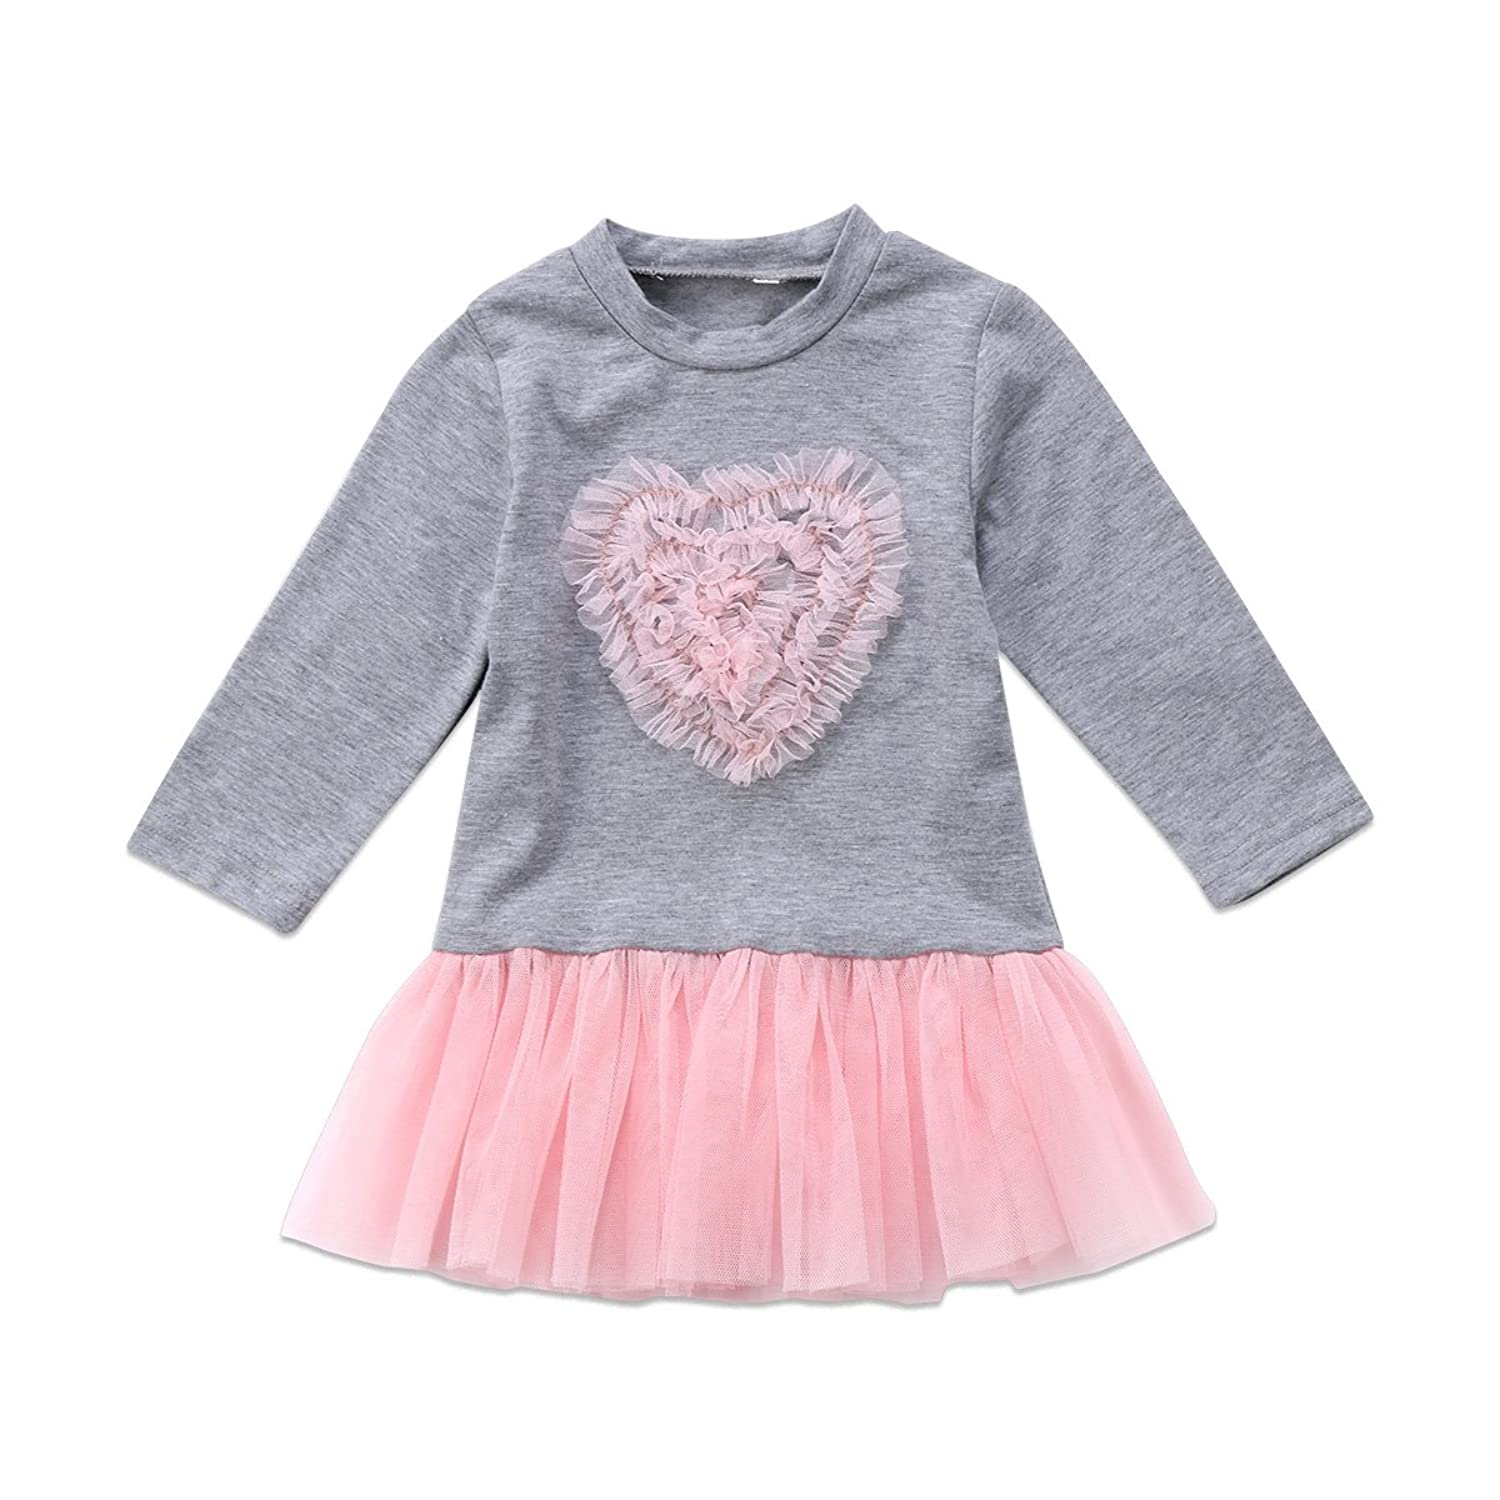 b06899143 Cute hair ball tutu dress design make your baby more attractive. Season:  Autumn/ Winter/ Spring Suitable for any occasions, wedding, prom, patry,  birthday, ...